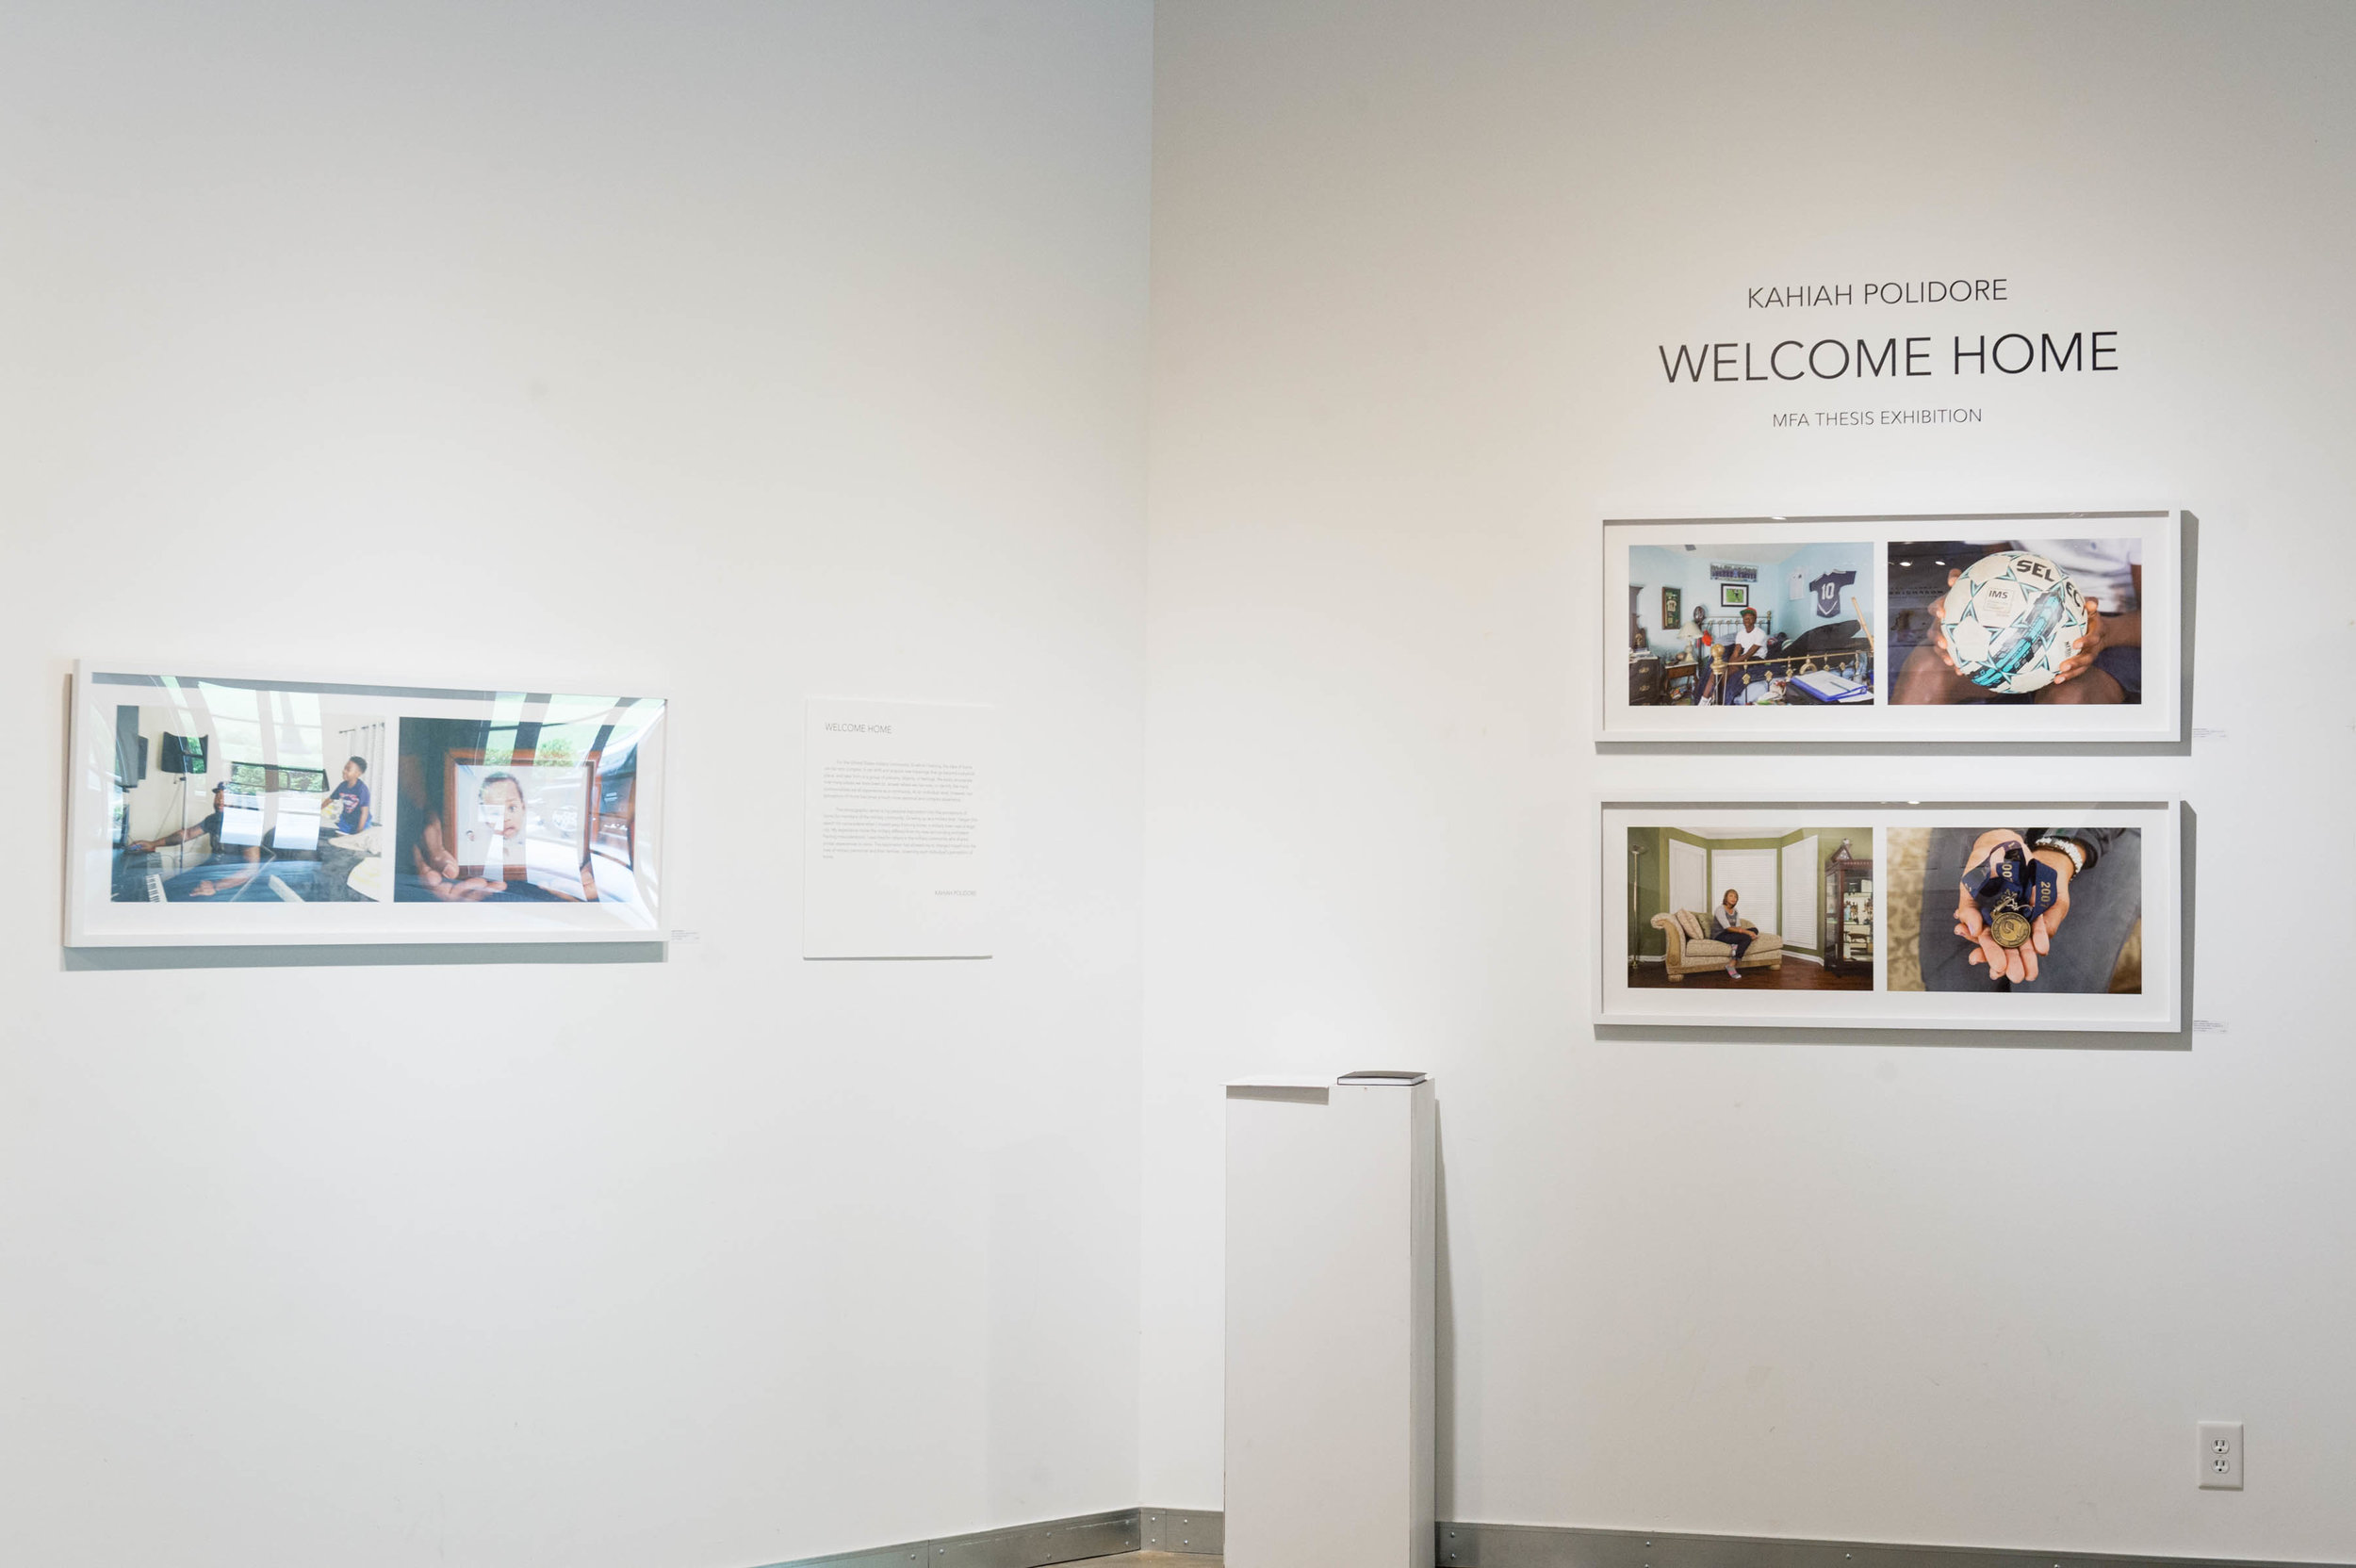 Polidore_Kahiah_WelcomeHome_Installation View_03.jpg